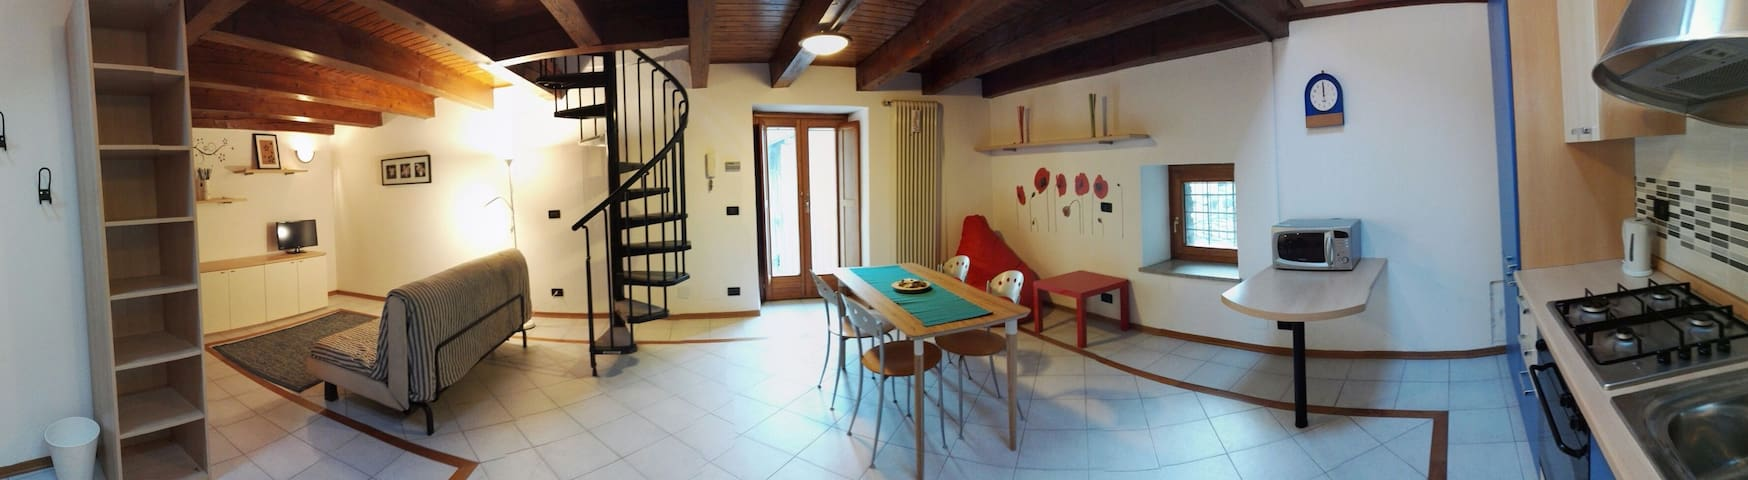 "Appartamento ""La Tor"" a Donnas - Donnas, Valle d'Aosta, IT - Apartament"